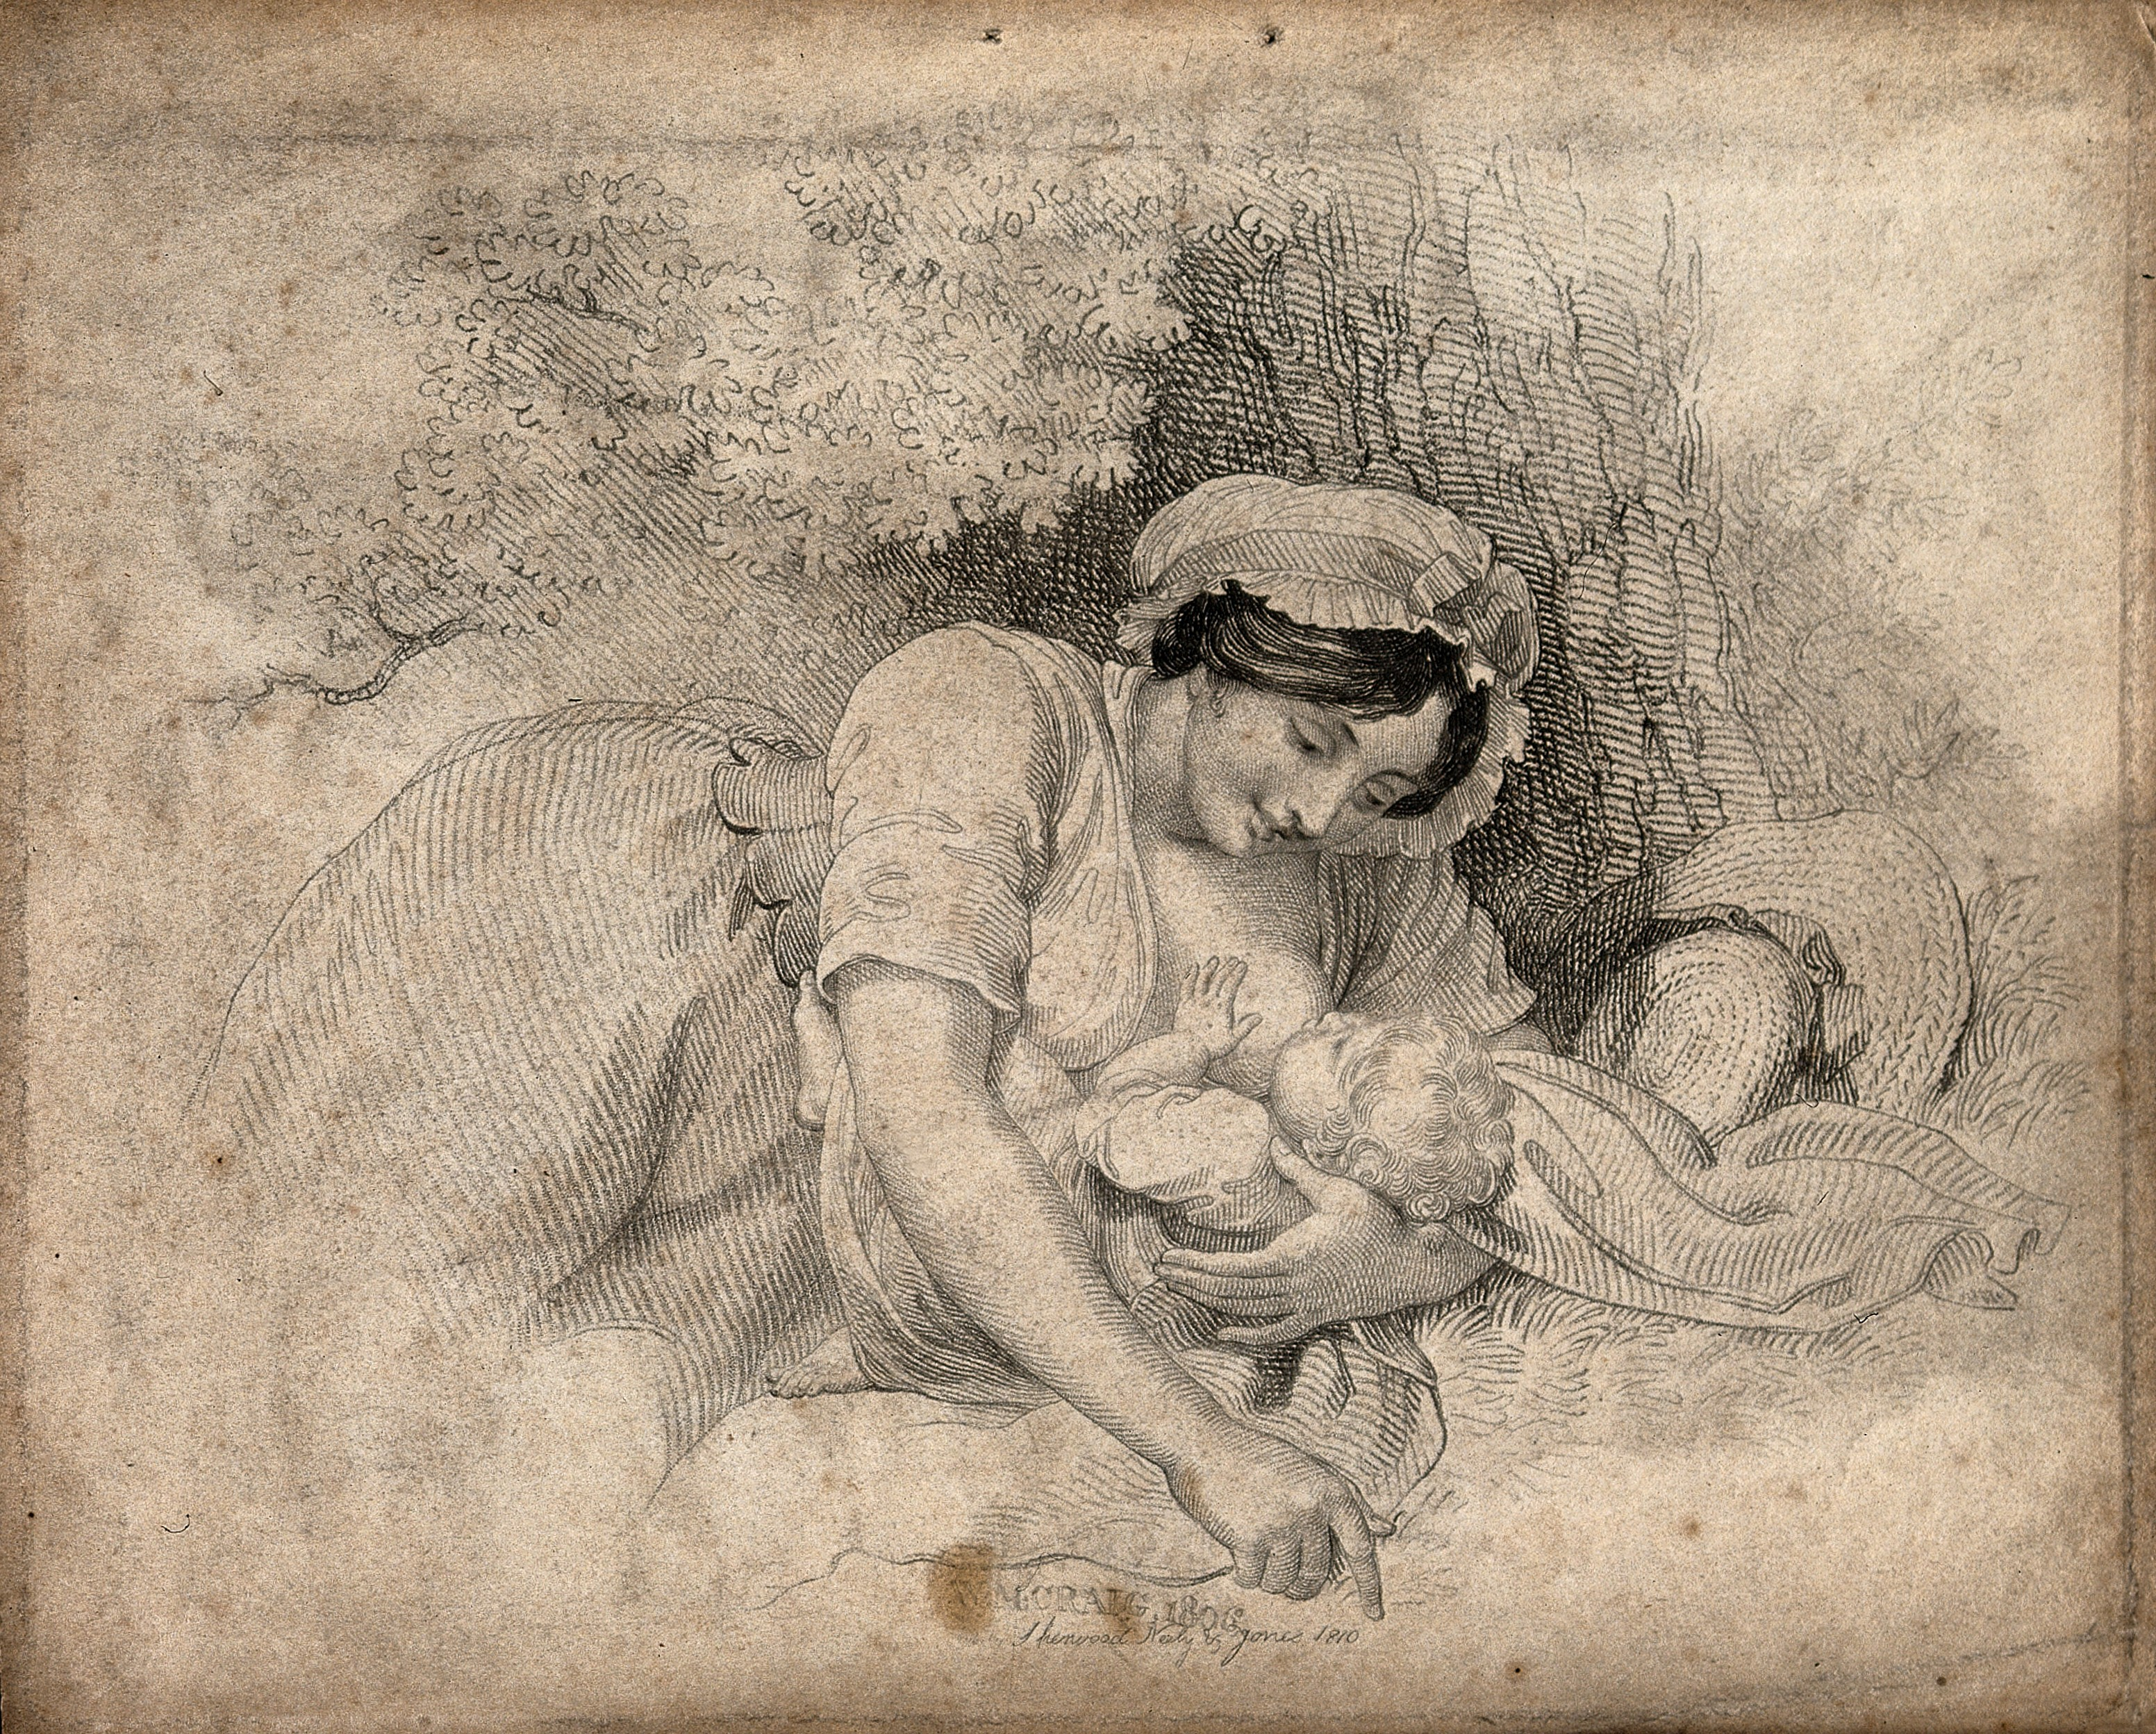 types of architecture - A woman breast feeding her child as an example of Stippling Easy Sketches